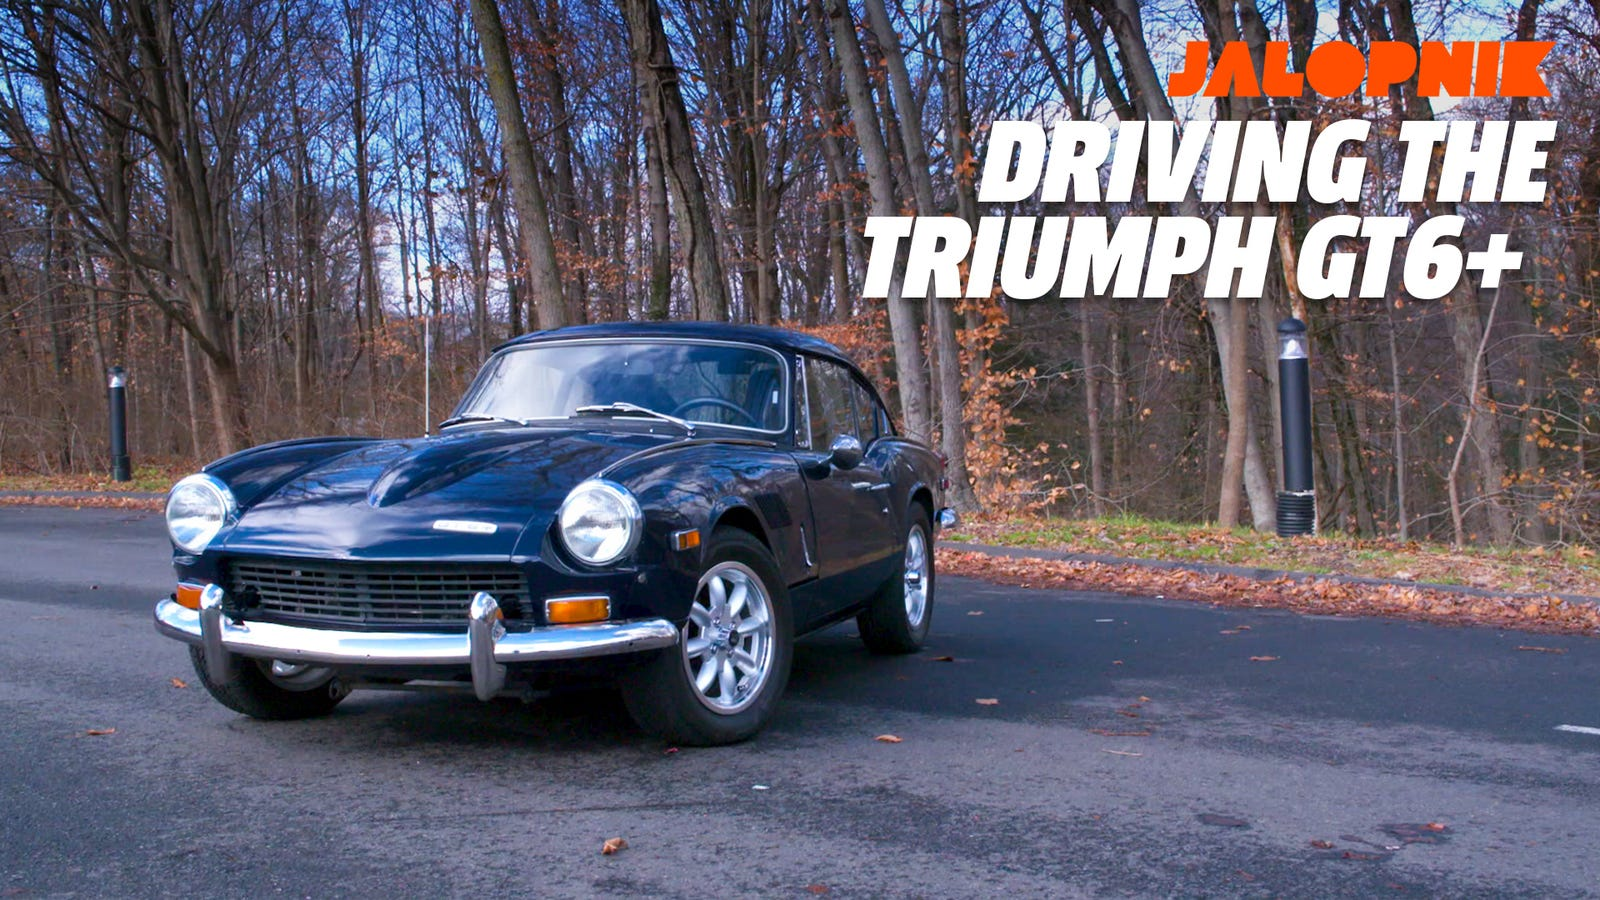 The Triumph Gt6 Is Proof Old British Sports Cars Are Worth It